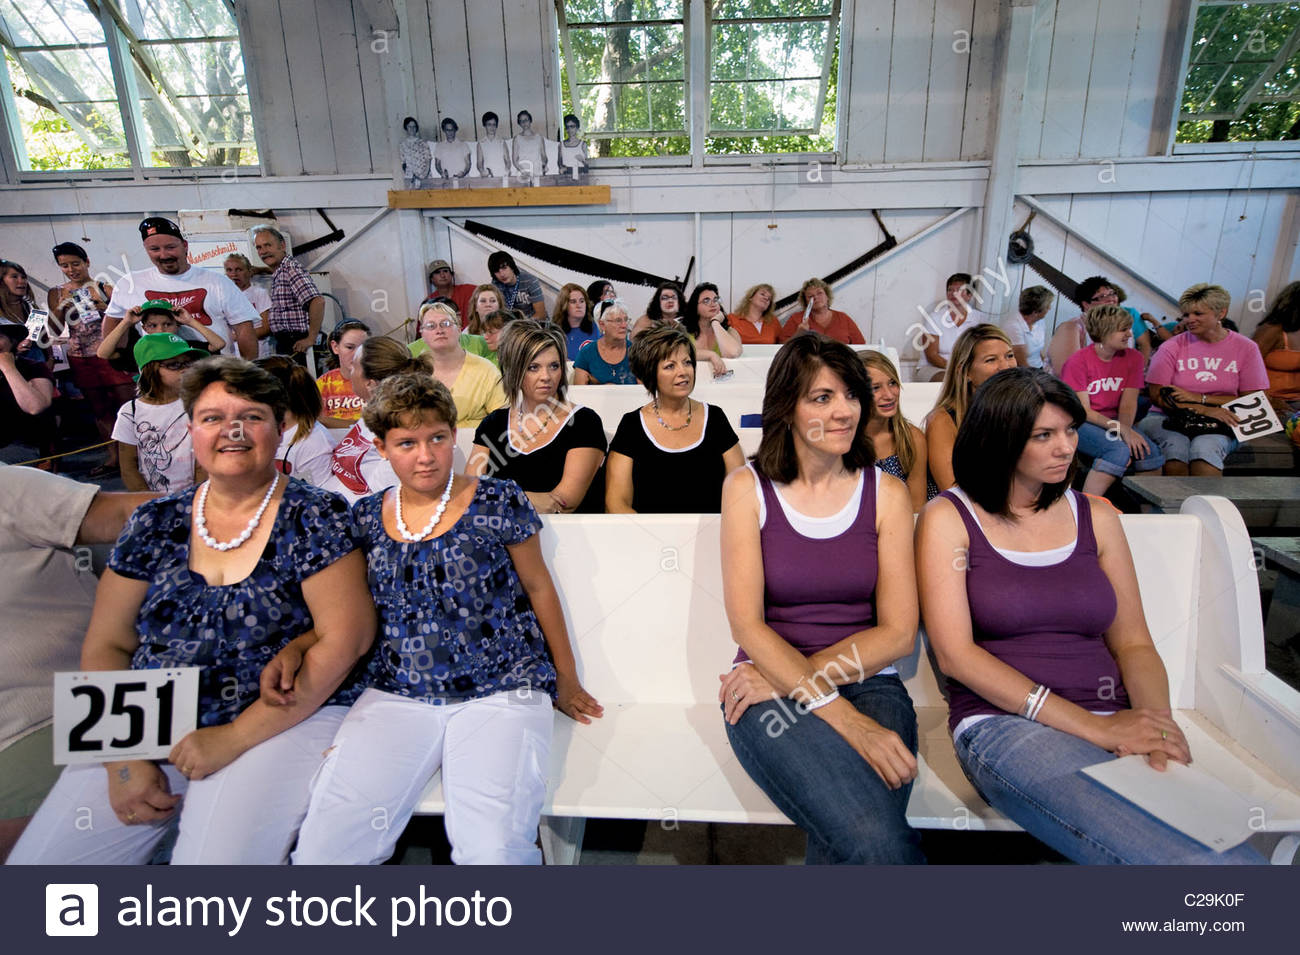 The Look-alike Contest for mothers and daughters. - Stock Image